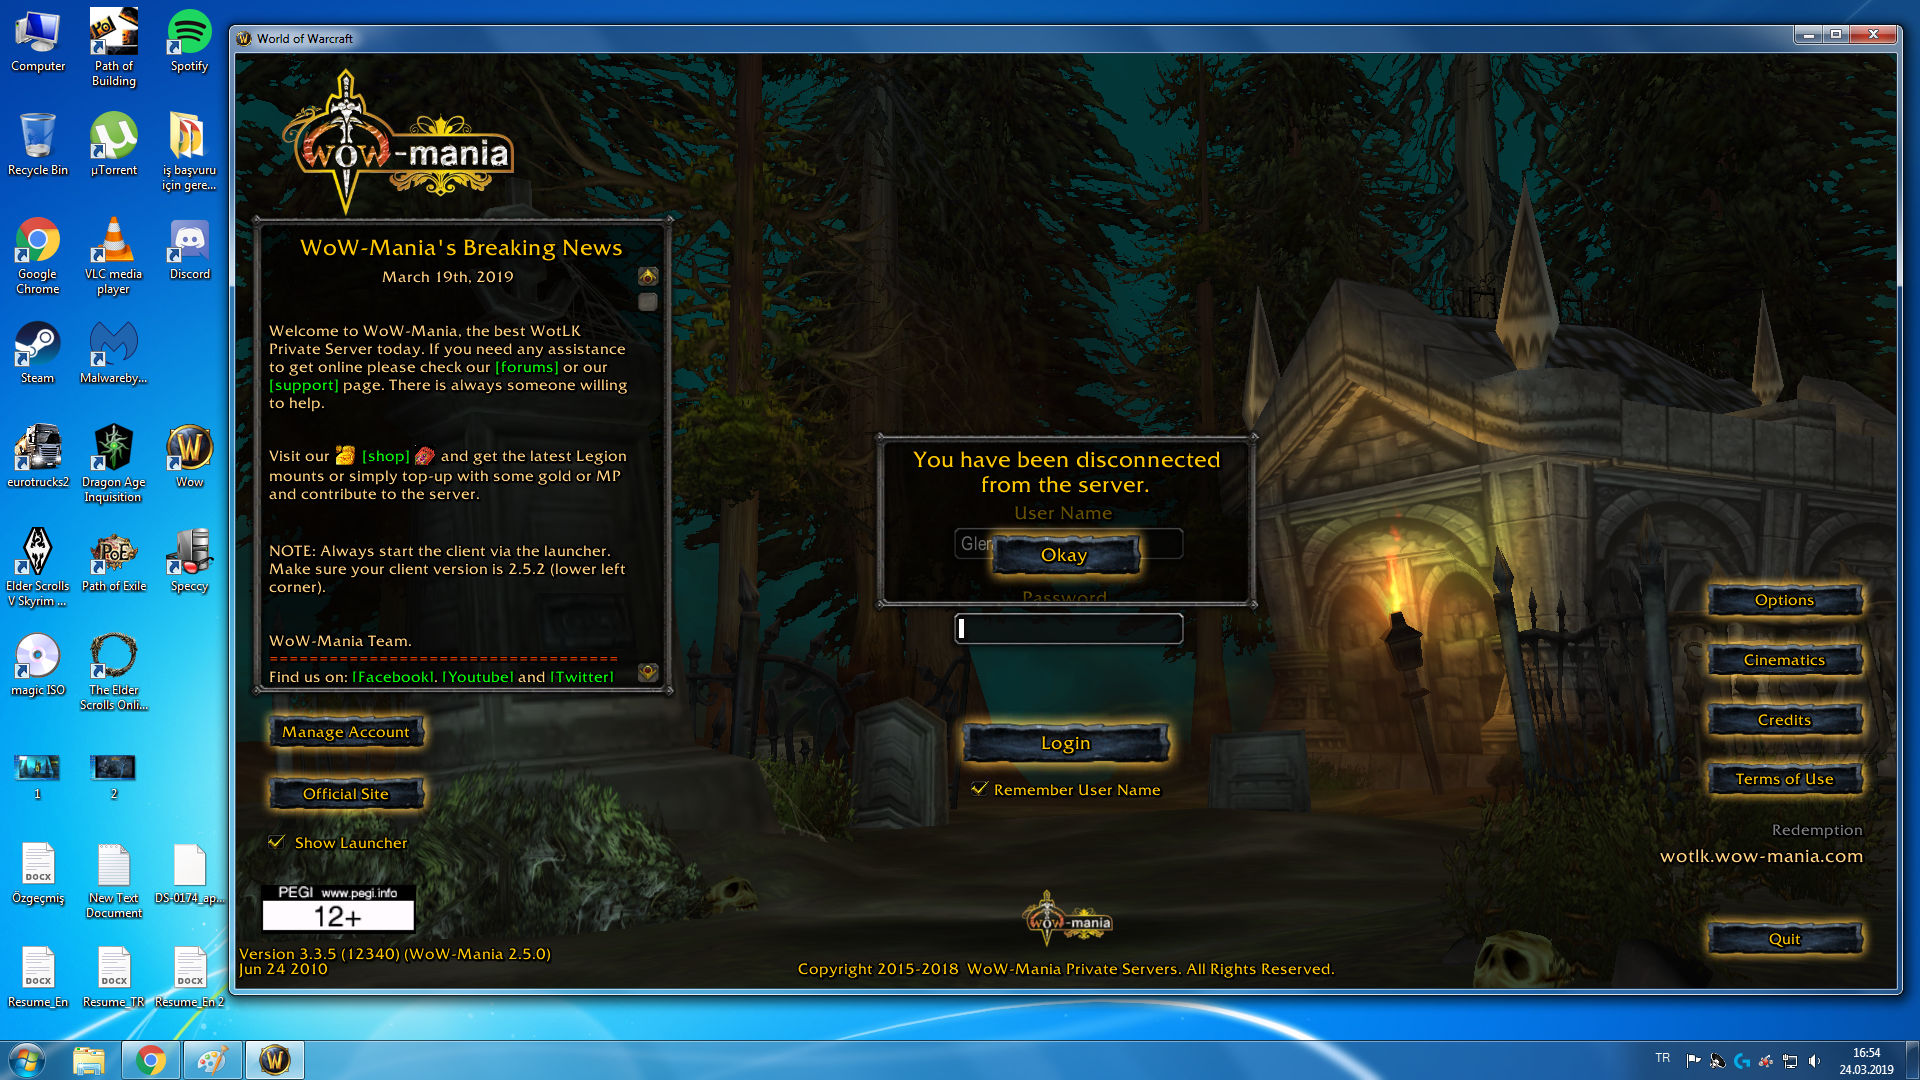 You have been disconnected wow  local server login  2019-05-26